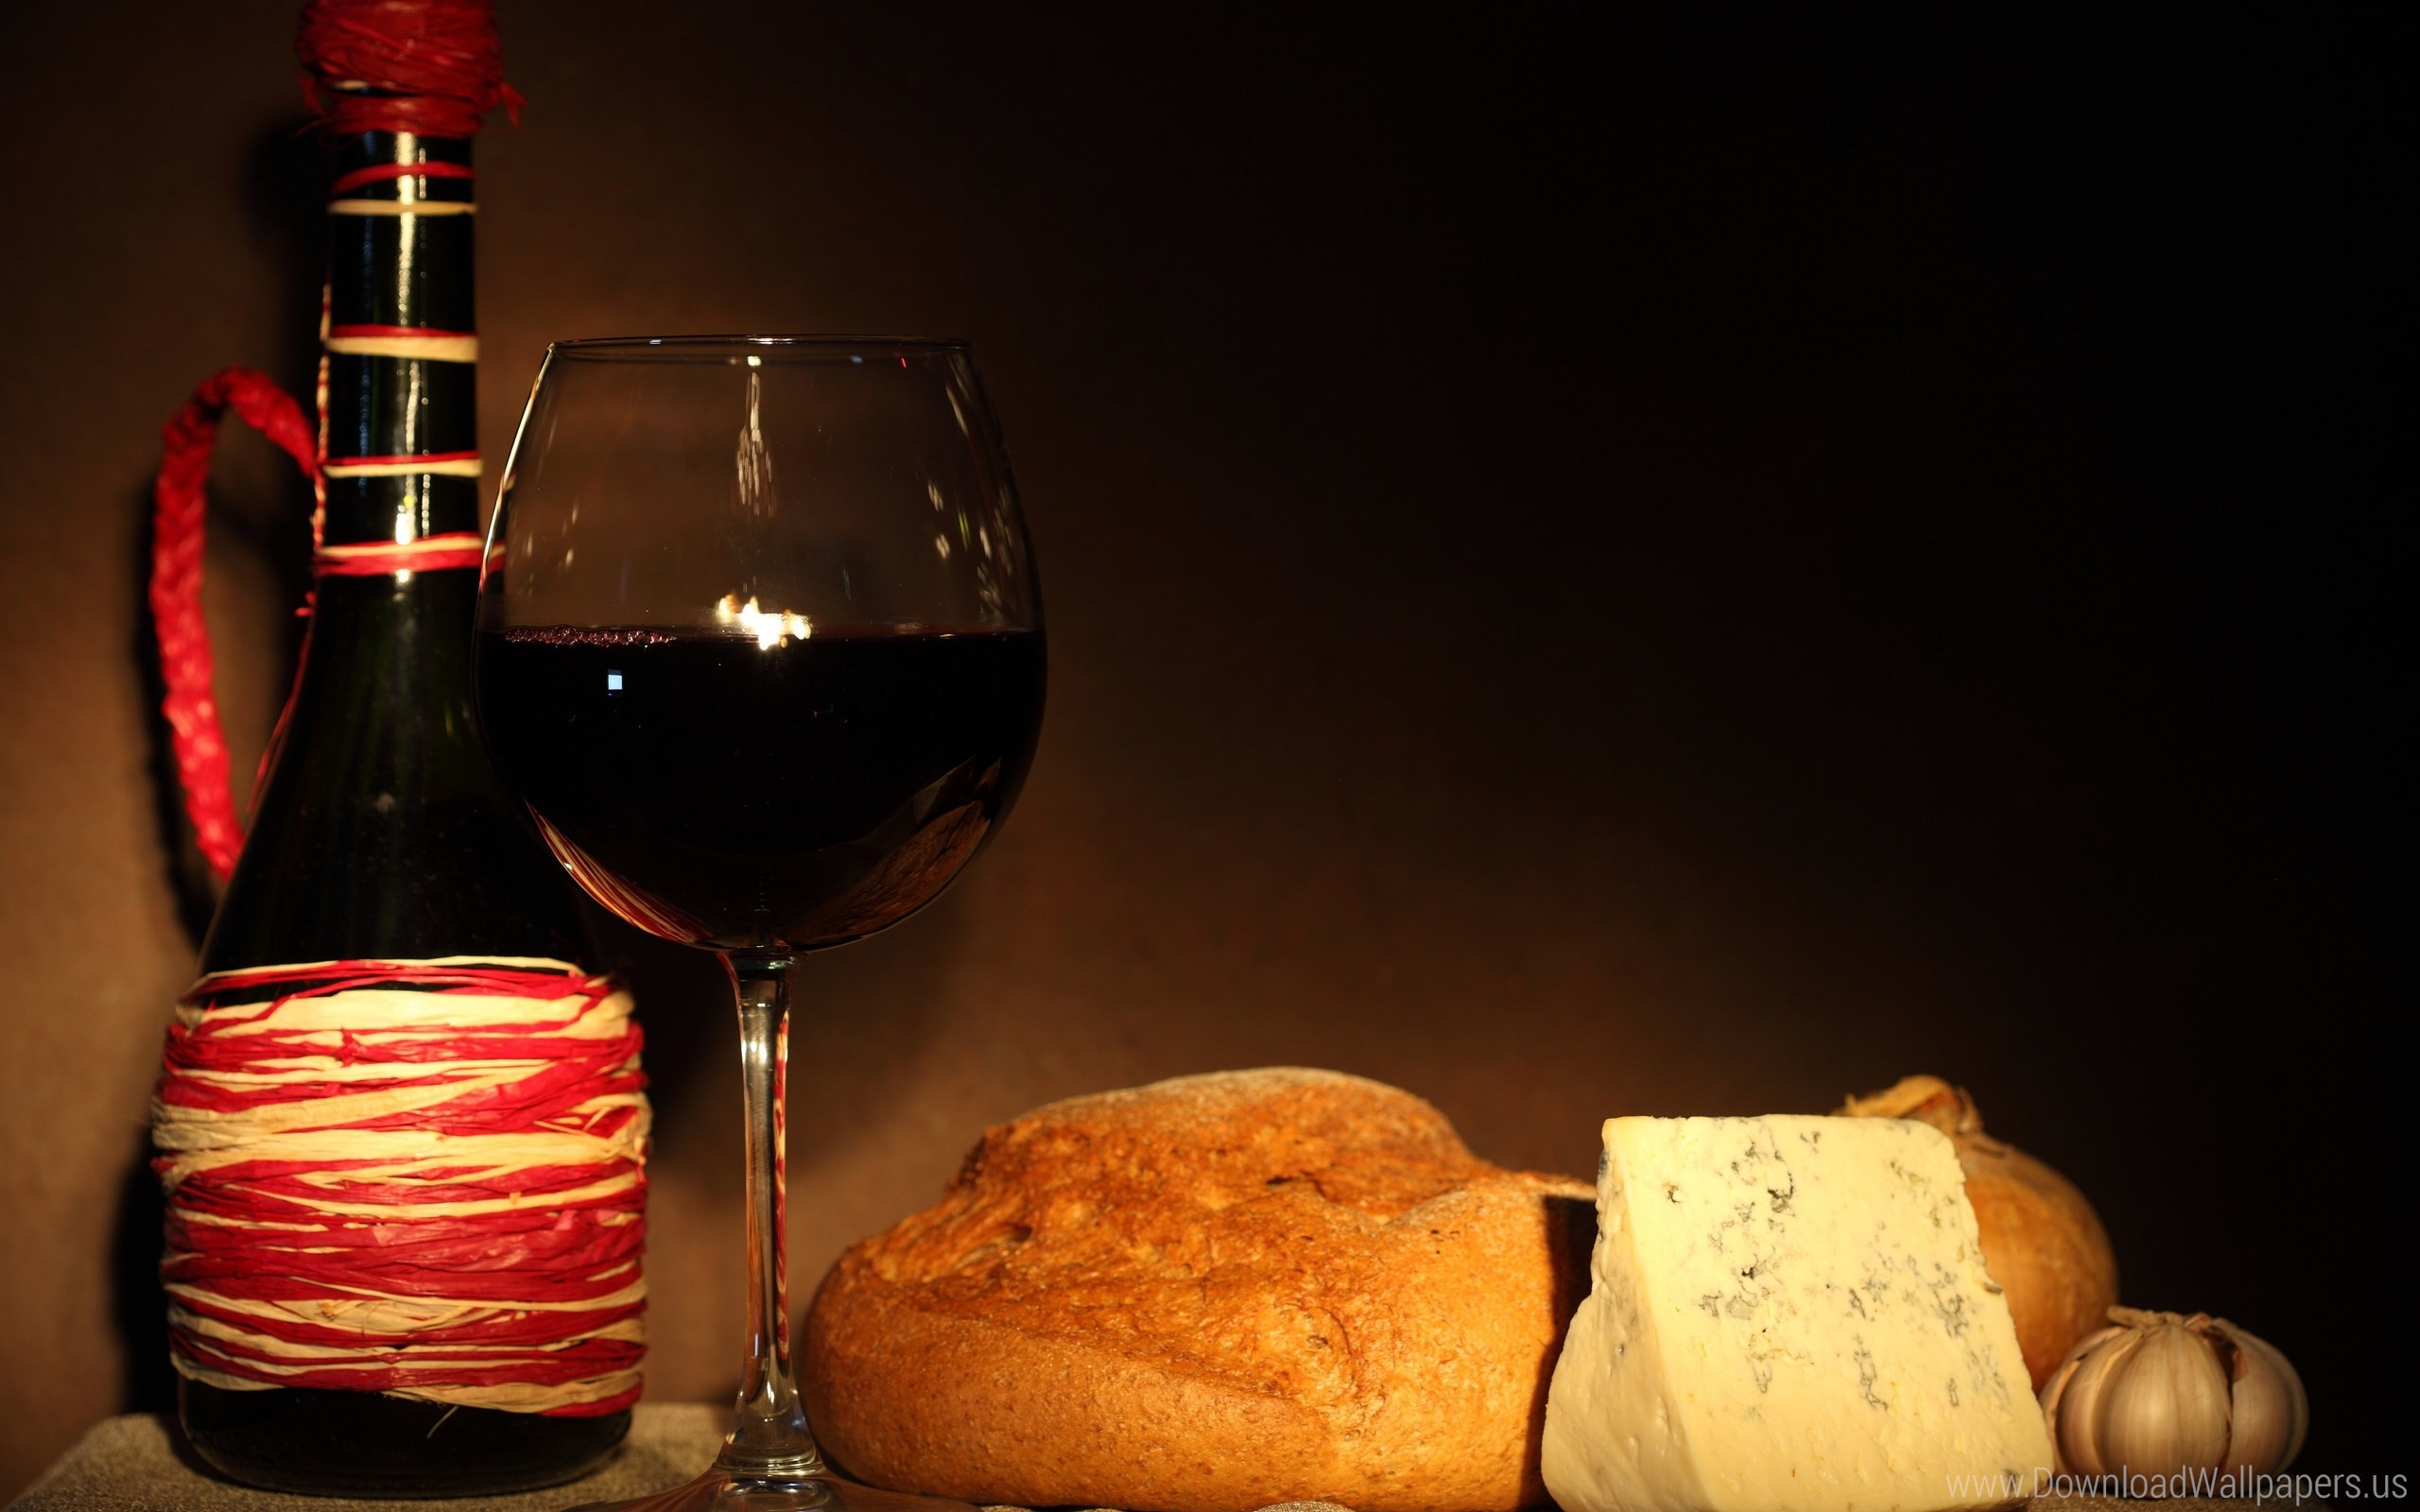 Res: 2560x1600, Download Widescreen 16:10  - Bottle, Bread, Cheese, Garlic, Glass,  Onion, Red, Wine Wallpaper